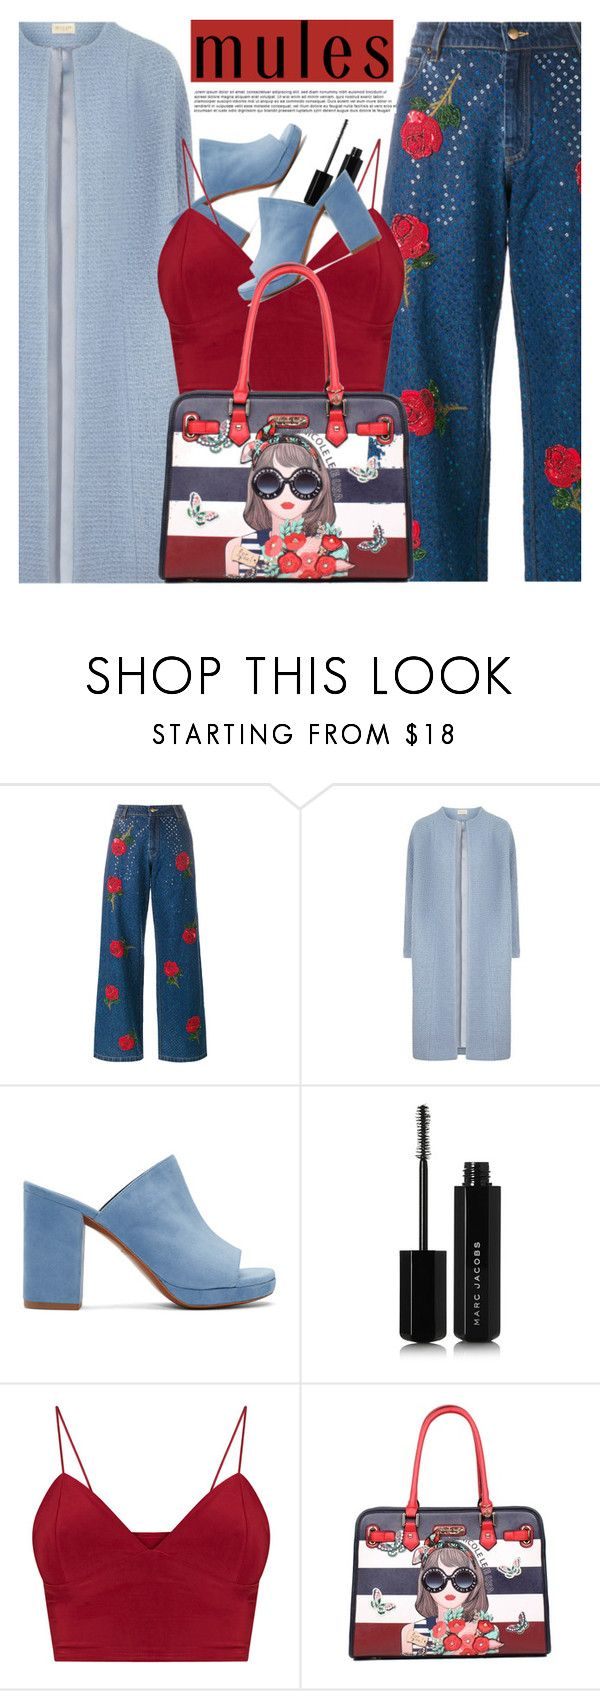 """""""mules"""" by ghdesigns-official ❤ liked on Polyvore featuring Ashish, Robert Clergerie, Marc Jacobs and mules"""